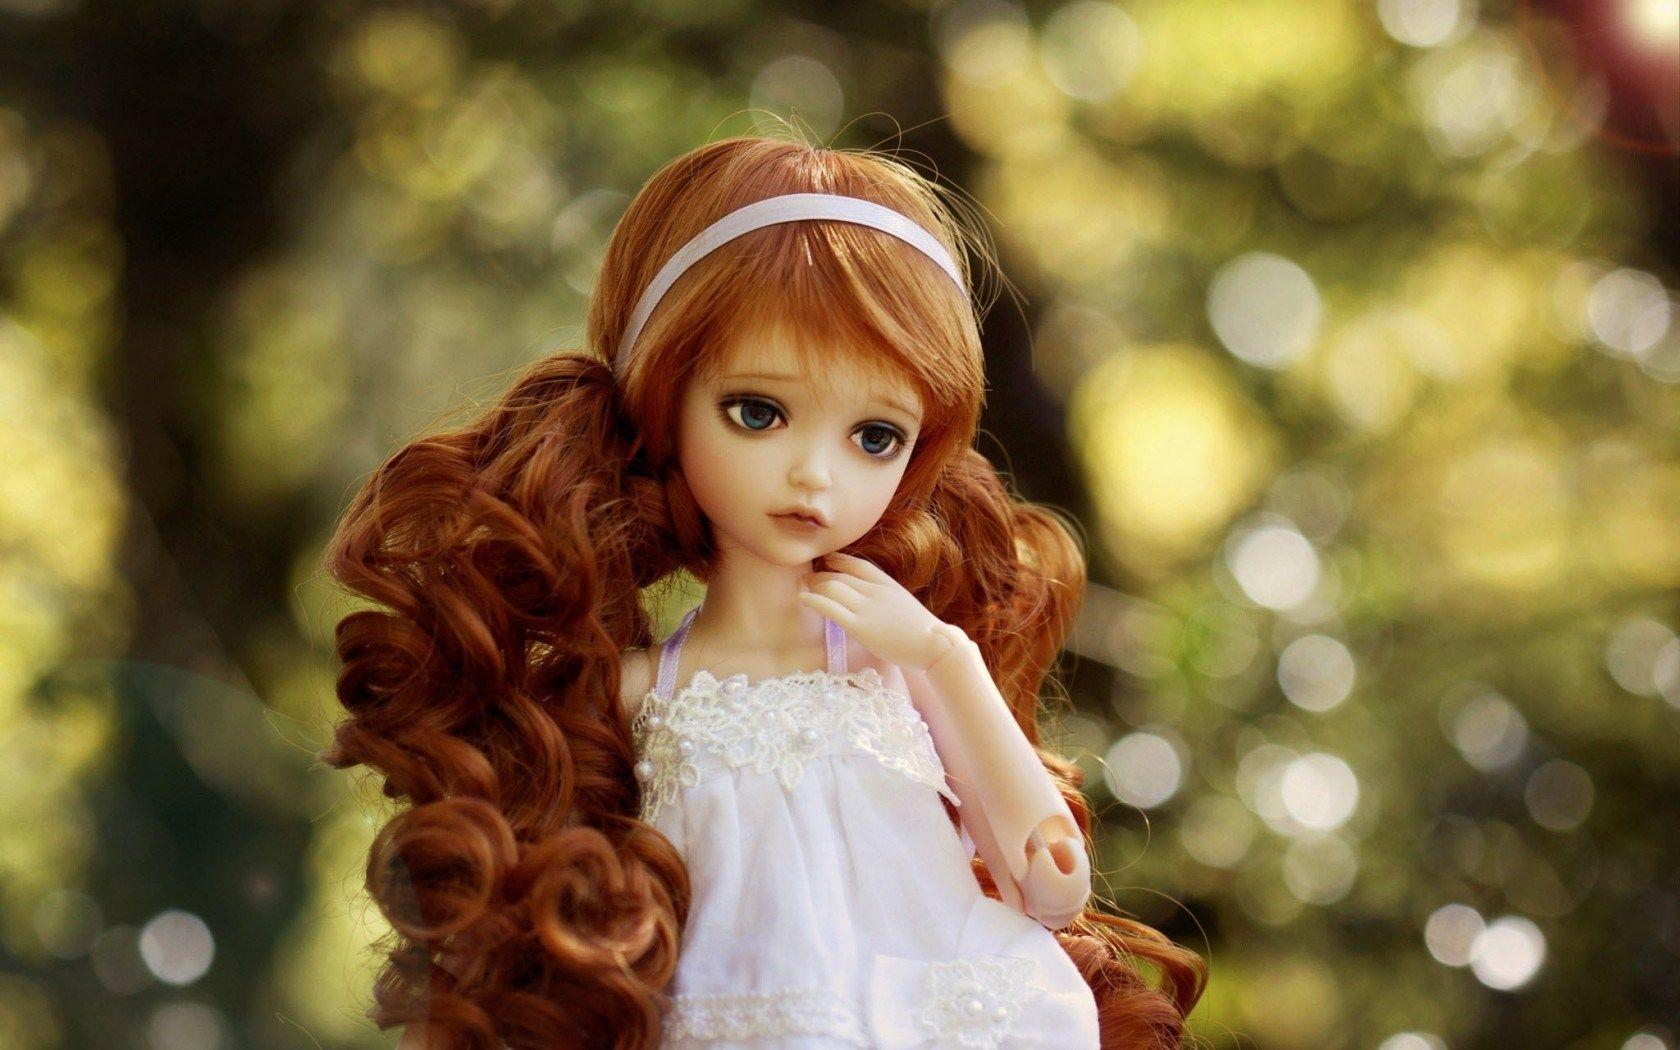 Cute barbie doll wallpapers wallpaper cave - Barbie images for wallpaper ...